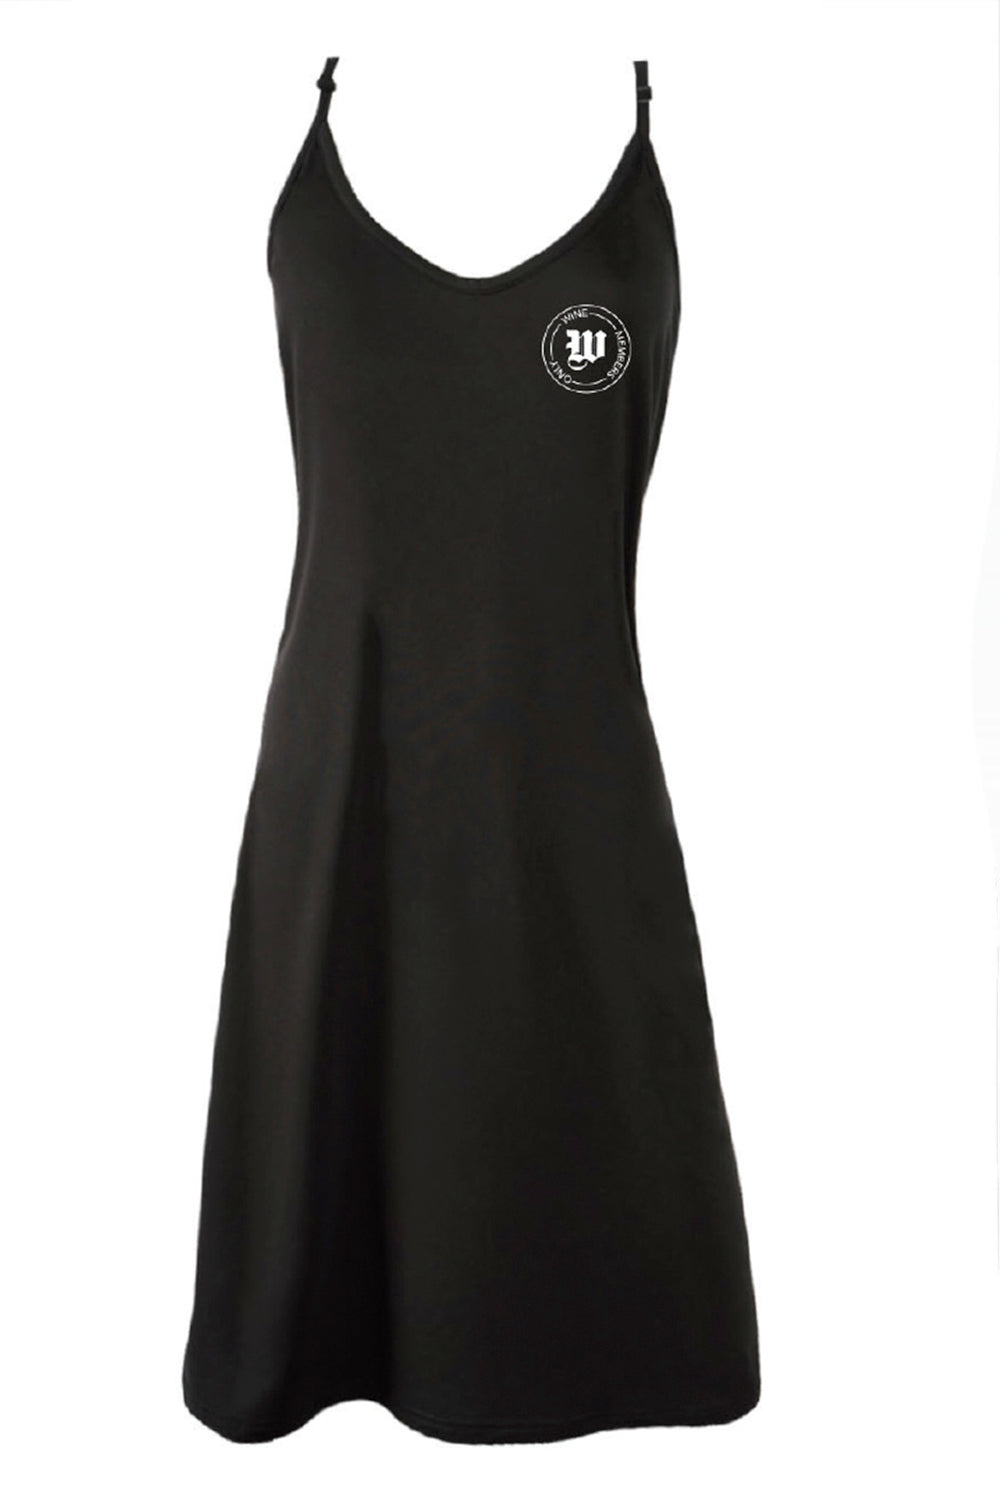 SLIP DRESS - Wine Members Only